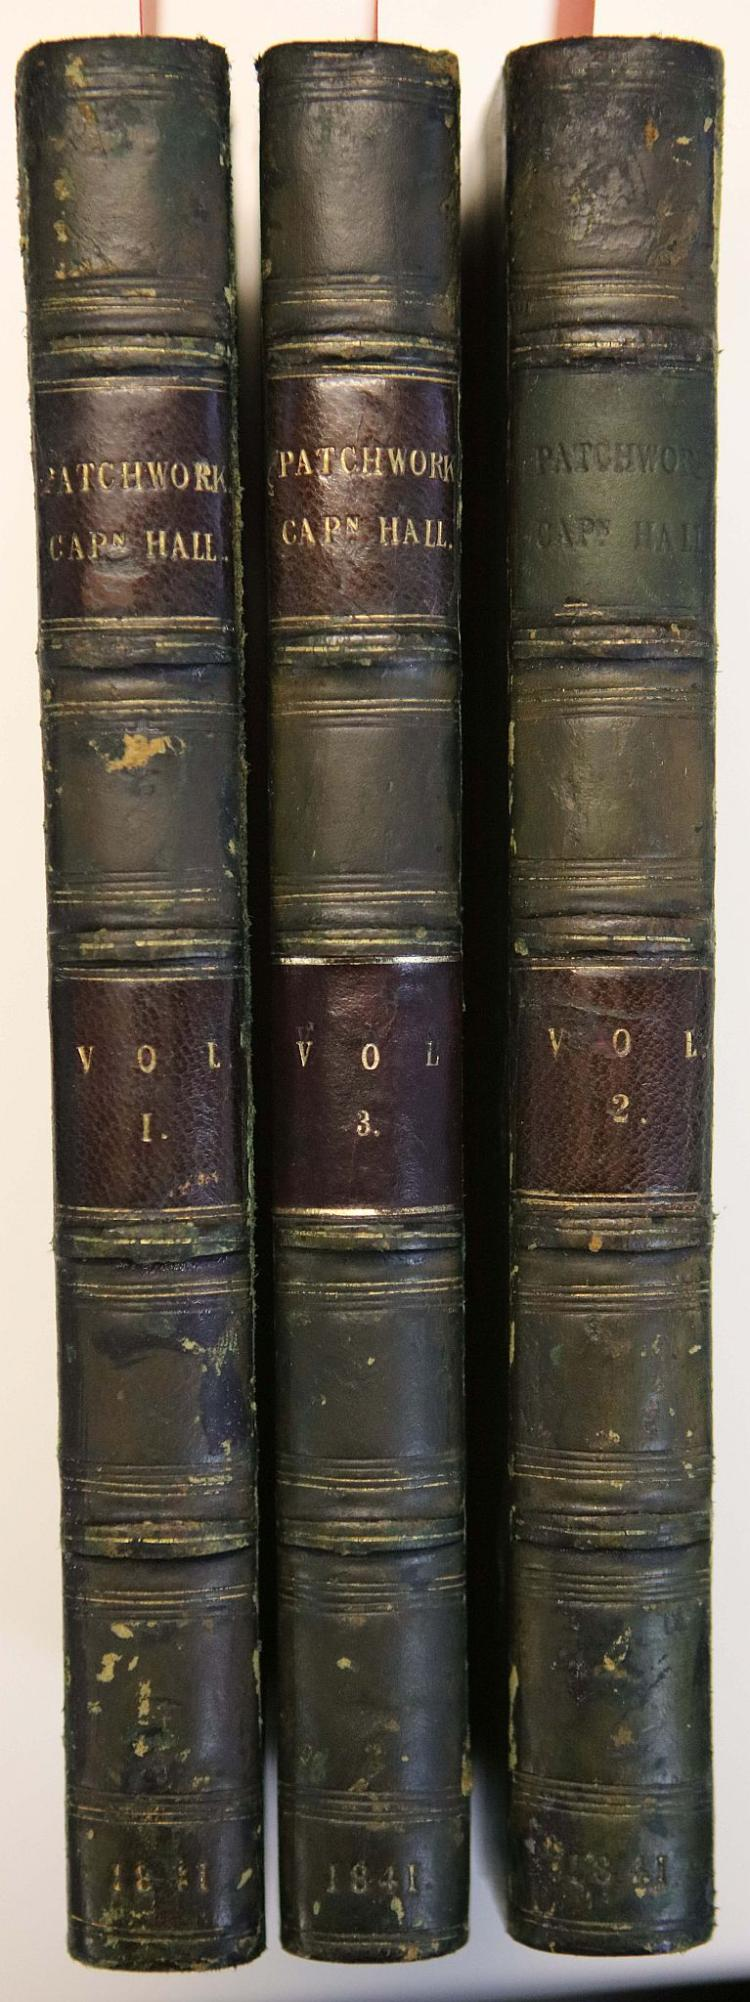 HALL, Basil (1788-1844).  Patchwork. London: Moxon, 1841. 3 volumes, 8vo. (Half titles to vols. II & III only, occasional spotting.) Contemporary green half calf (spines chipped, boards lightly rubbed). FIRST EDITION. PRESENTATION COPY, inscribed: